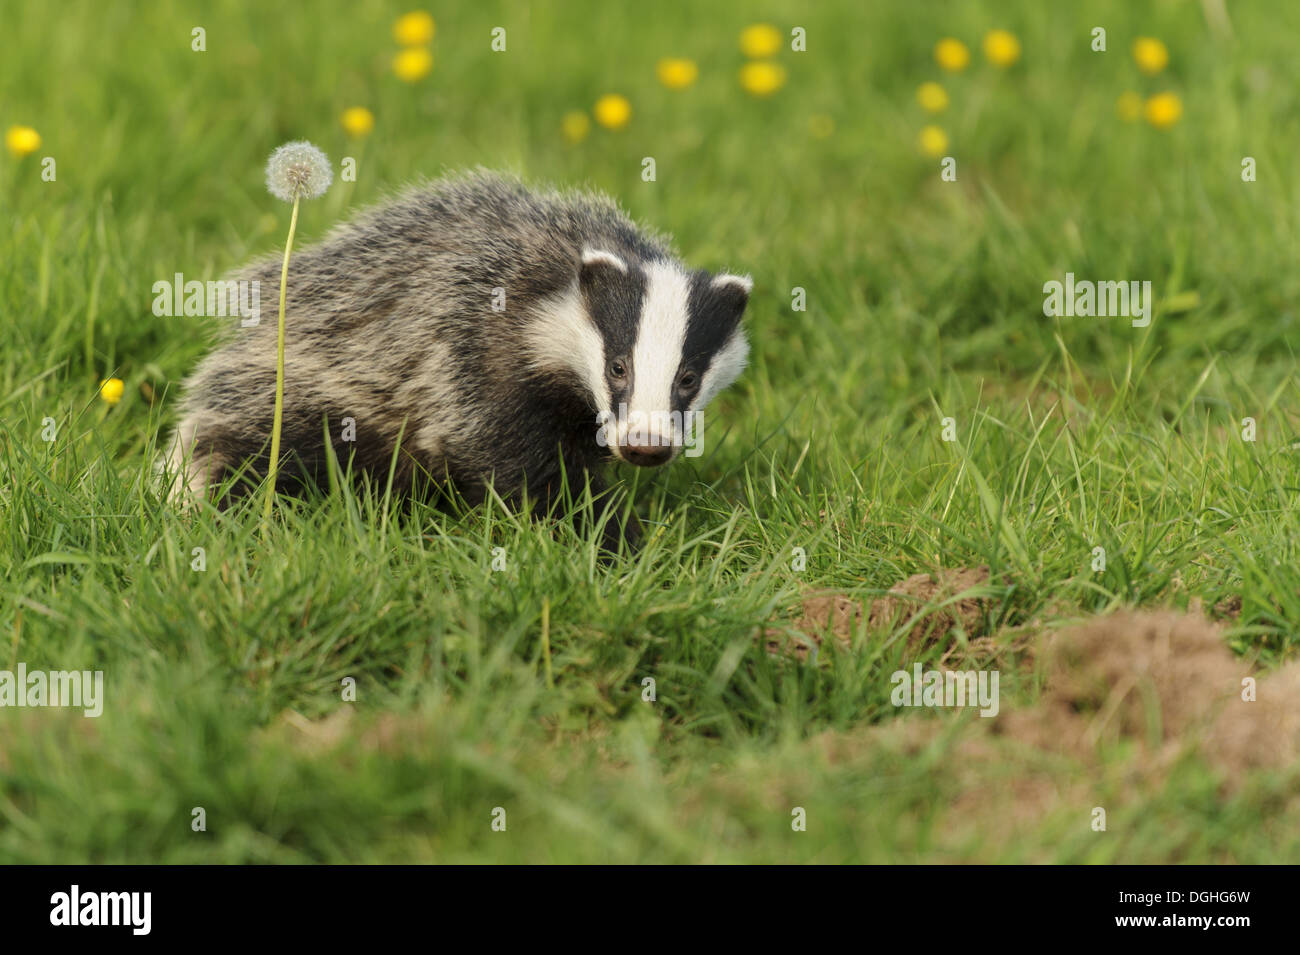 Eurasian Badger (Meles meles) cub, standing beside dandelion seedhead in meadow, Jackson's Coppice, Staffordshire, England, May - Stock Image